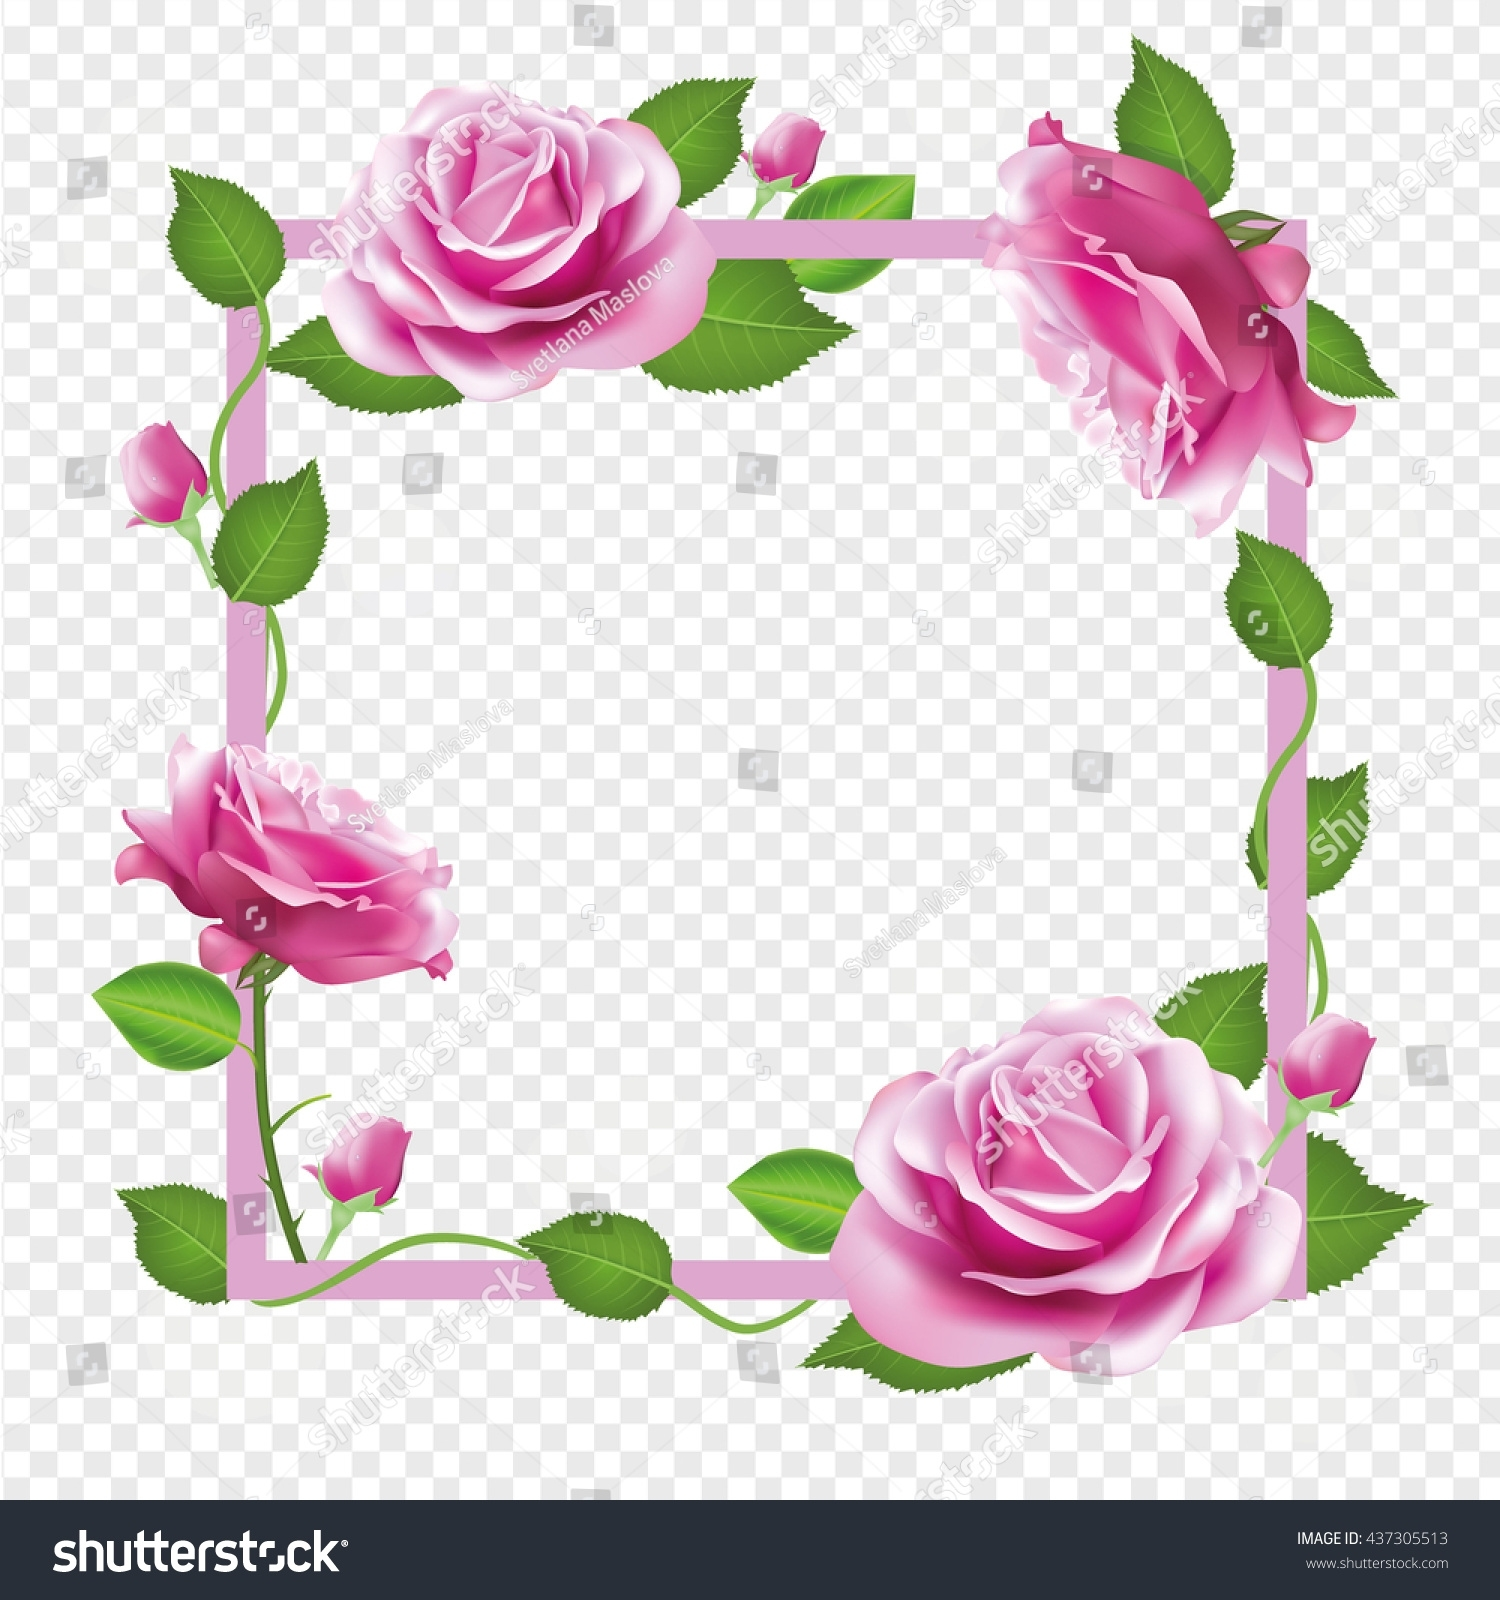 Flower Frame Pink Roses Vector Border Stock-Vektorgrafik (Lizenzfrei with regard to Garden Flower Frame Design Art Vector